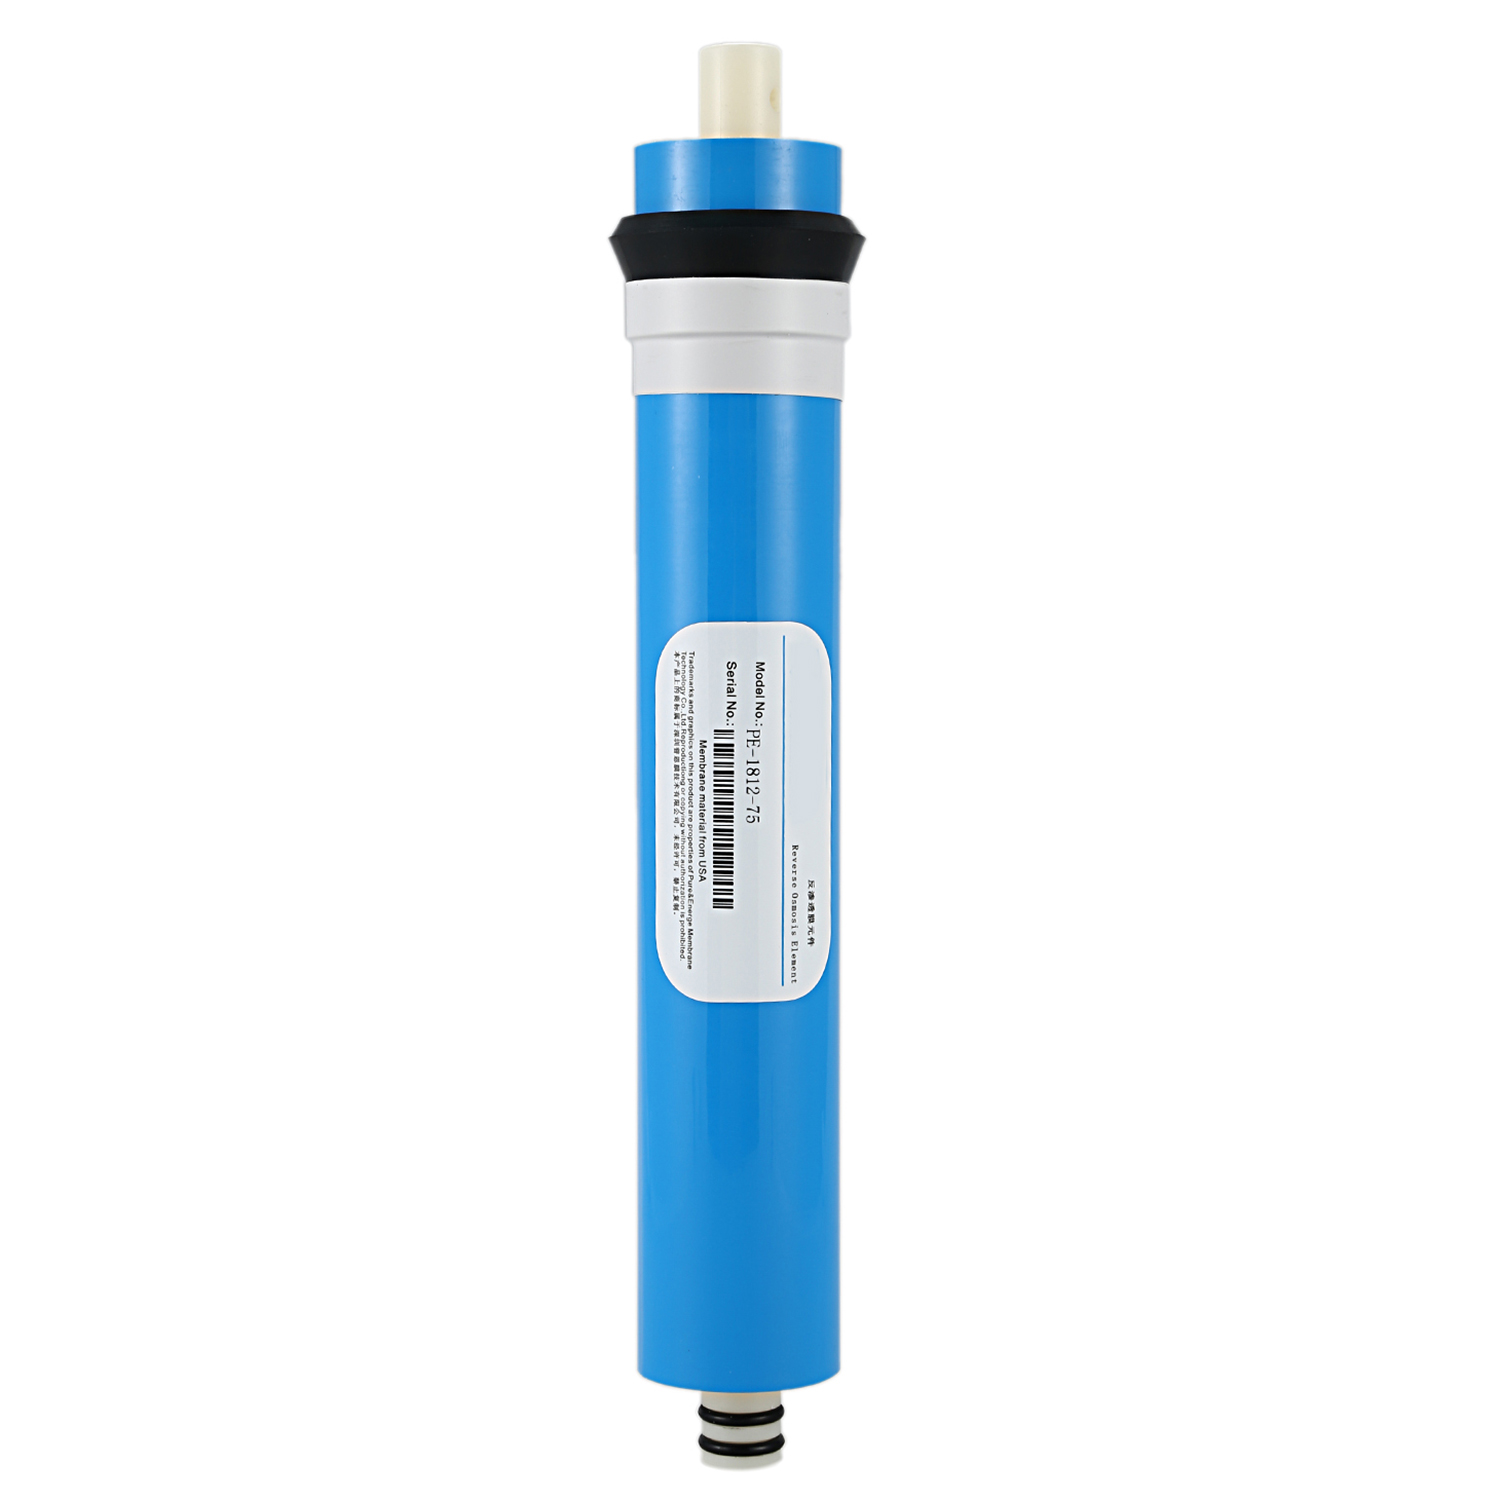 Vontron ULP1812-75 RO Membrane Elements NSF Reverse Osmosis System 75gpd Water Filter Cartridge